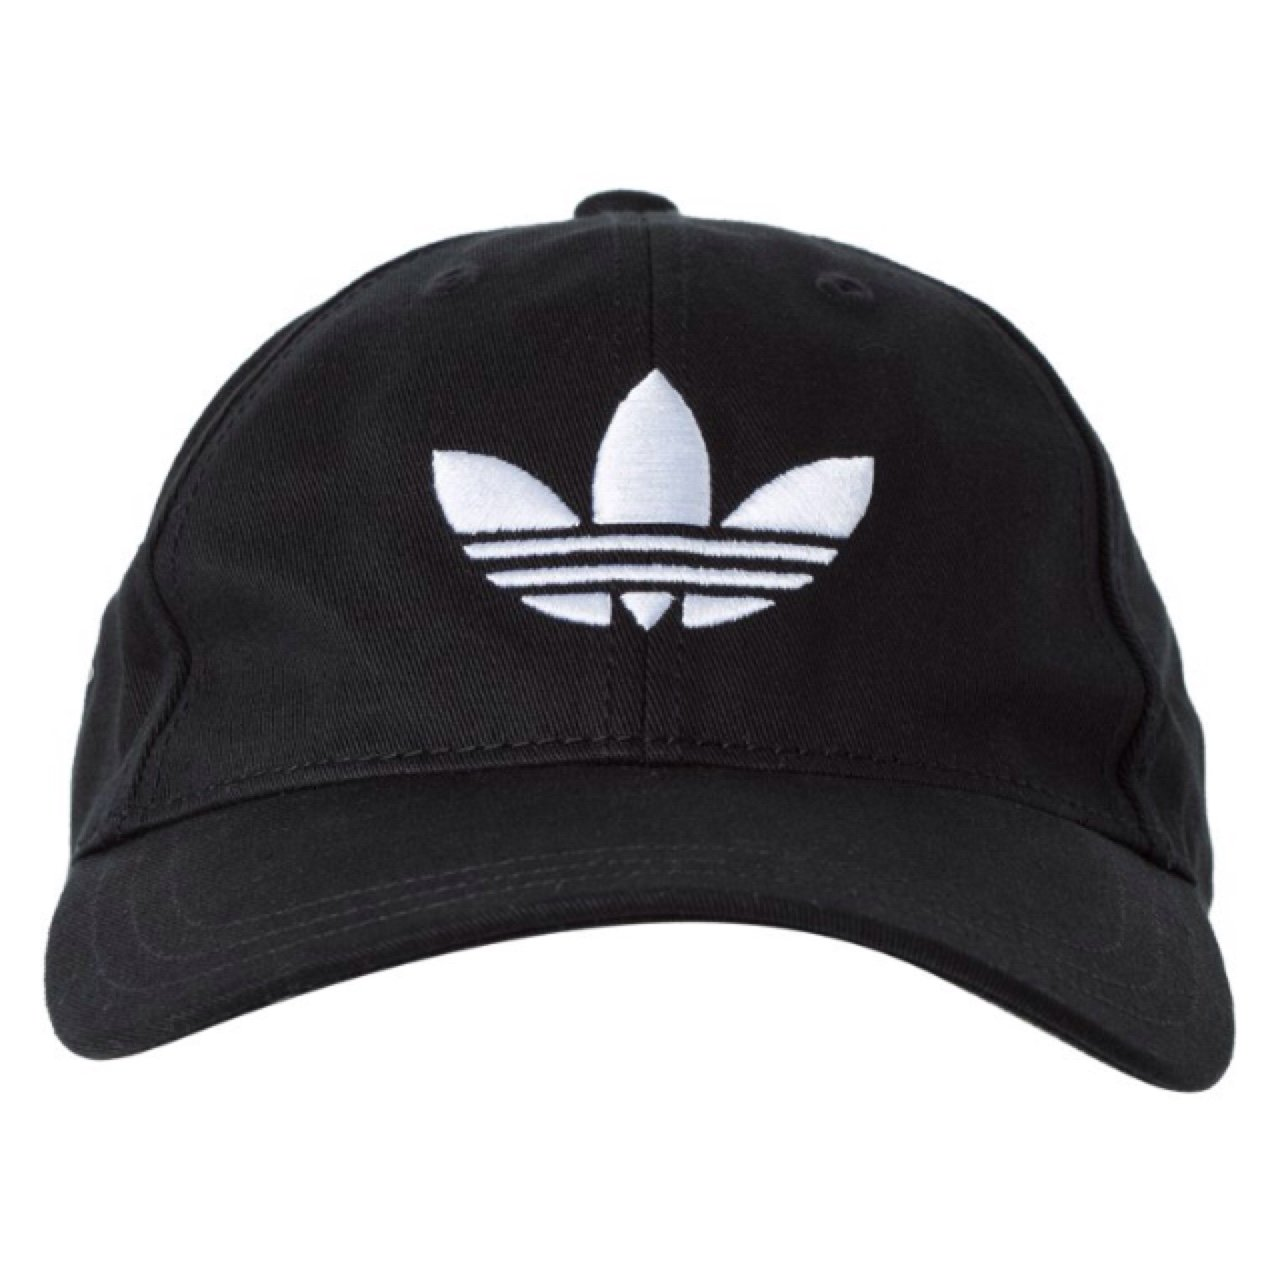 Brand new Adidas Originals Classic cap. The cotton twill cap - Depop 04998670cda